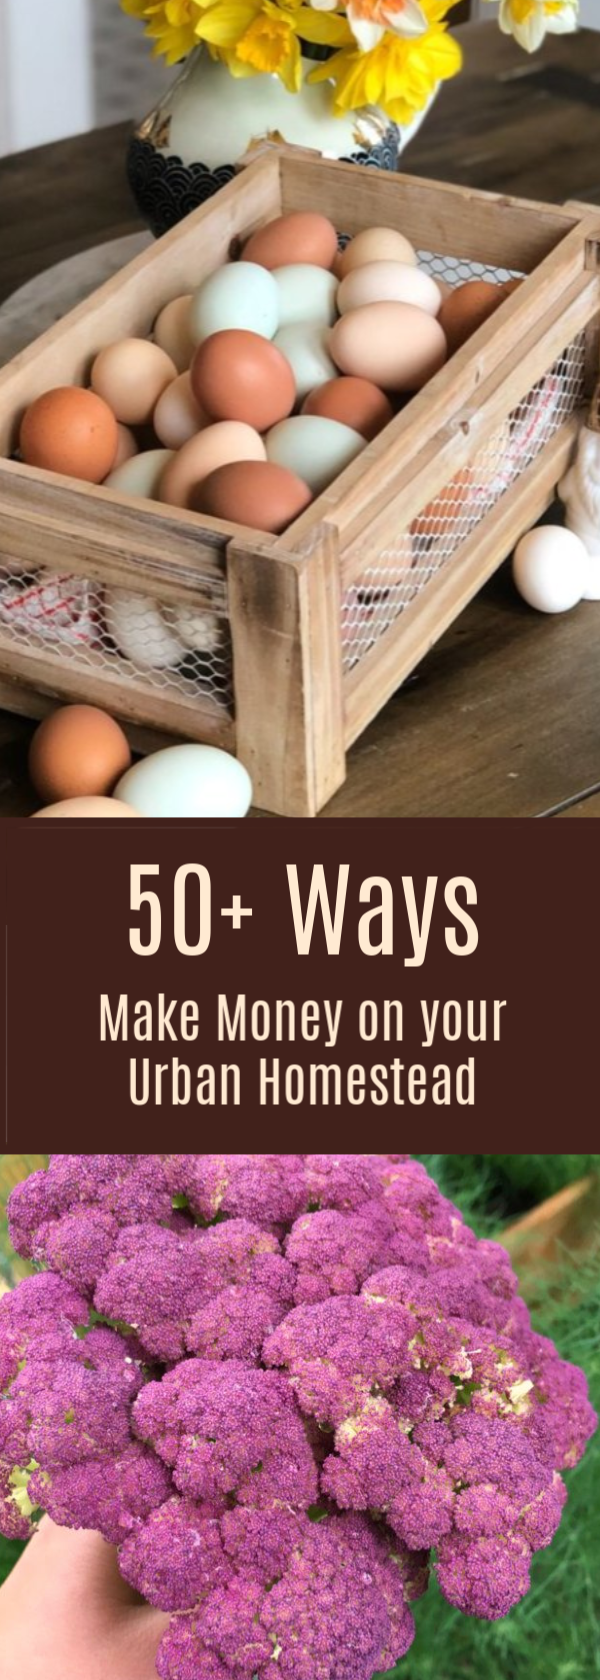 50+ ways to make money on an urban homestead